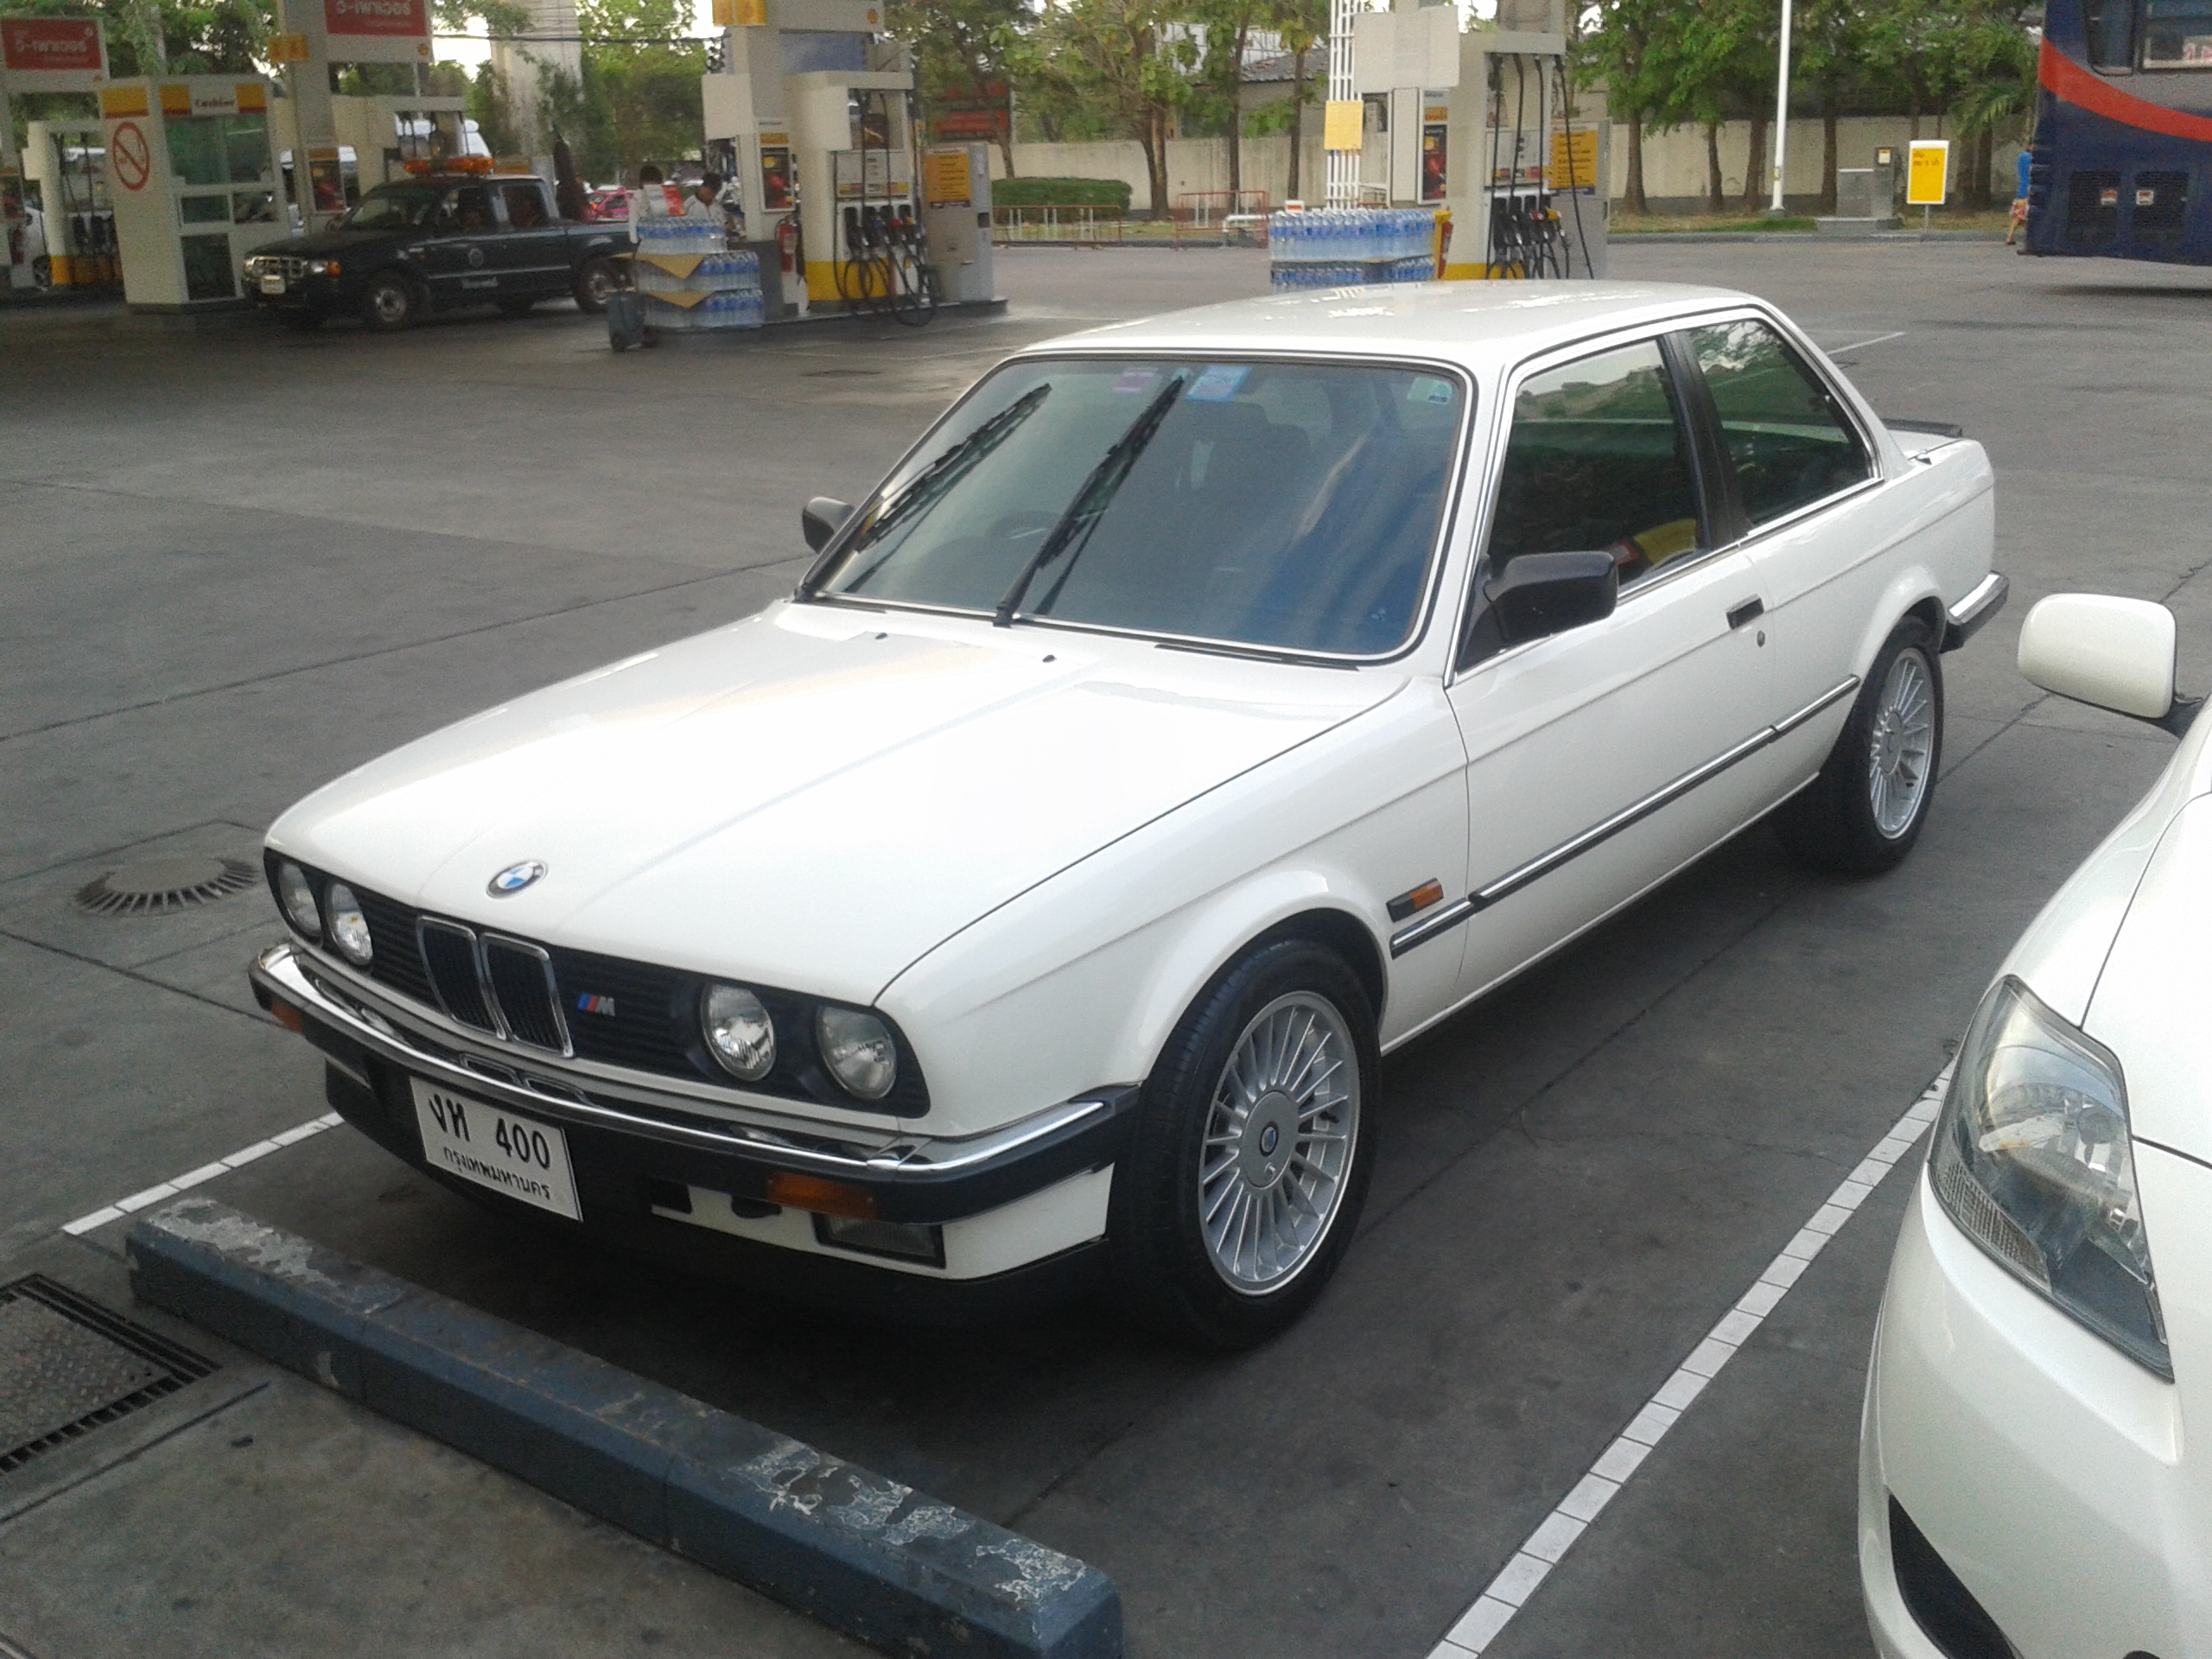 File Bmw 316 Alpina E30 Coupe In Thailand 01 Jpg Wikimedia Commons